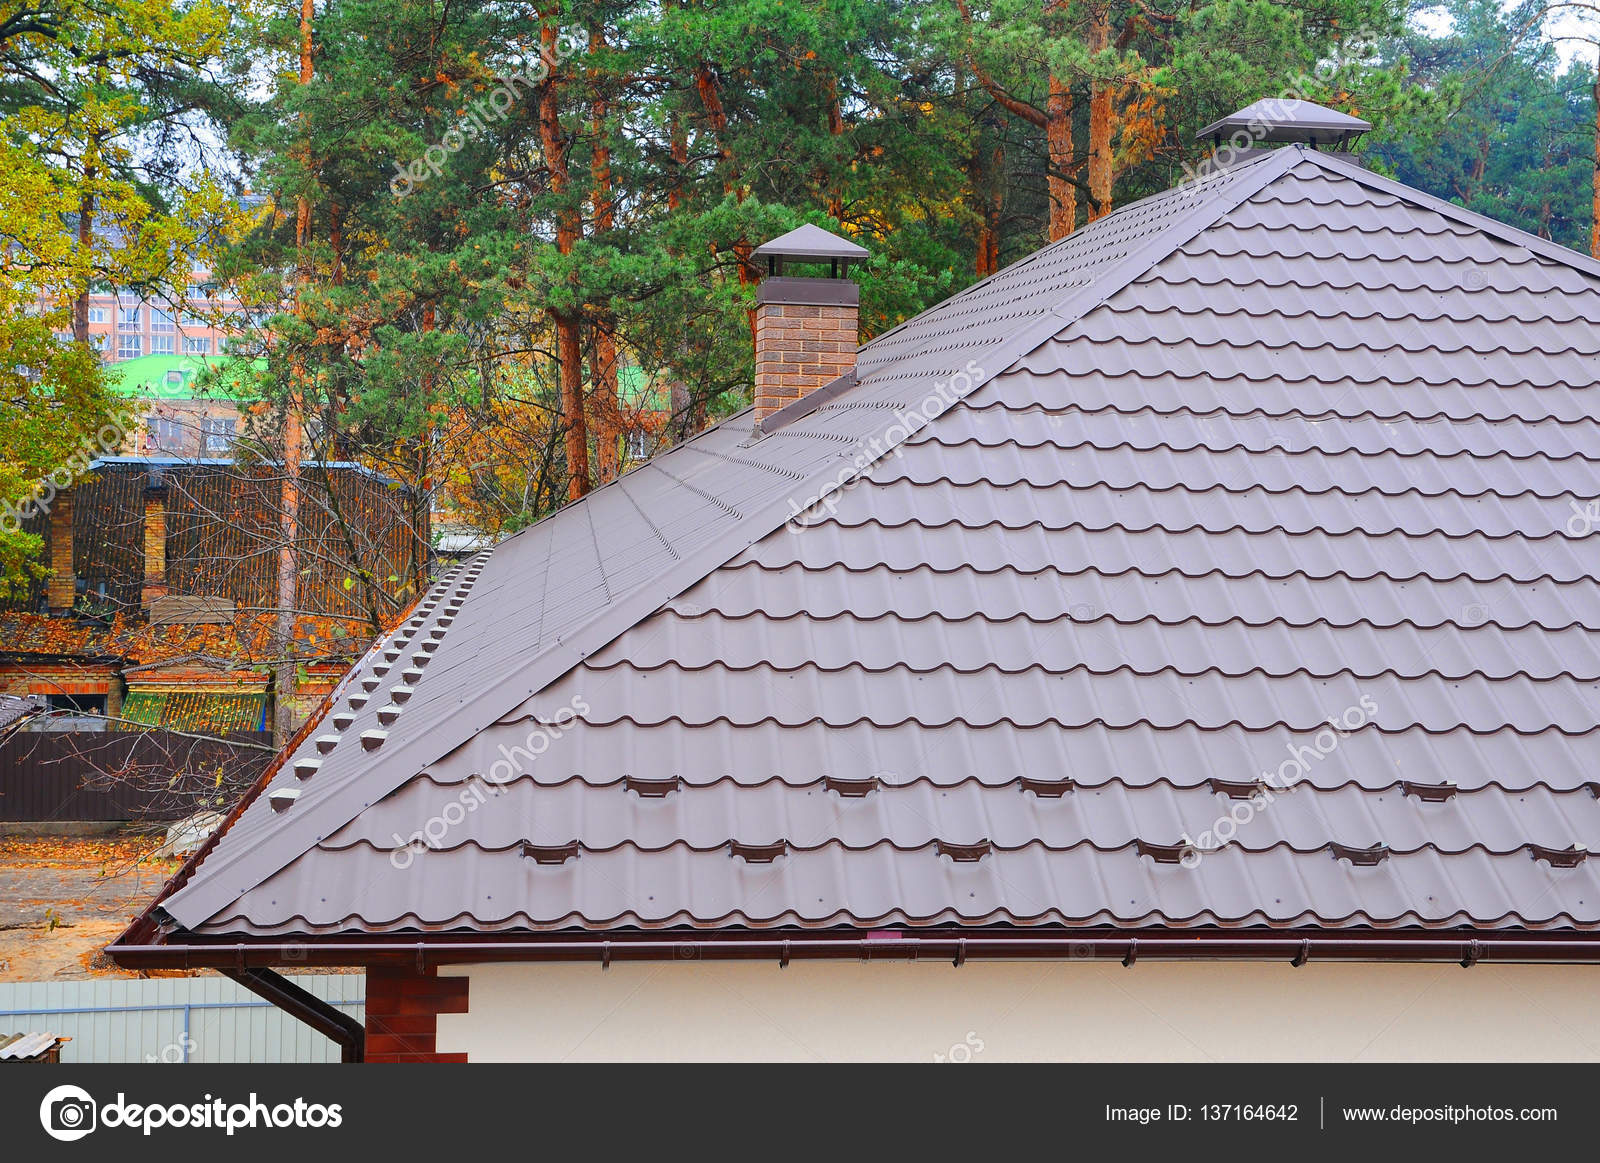 Hood On The Roof Of The Metal Sheets. Roofing Materials. Coaxial Pipe  Heating System